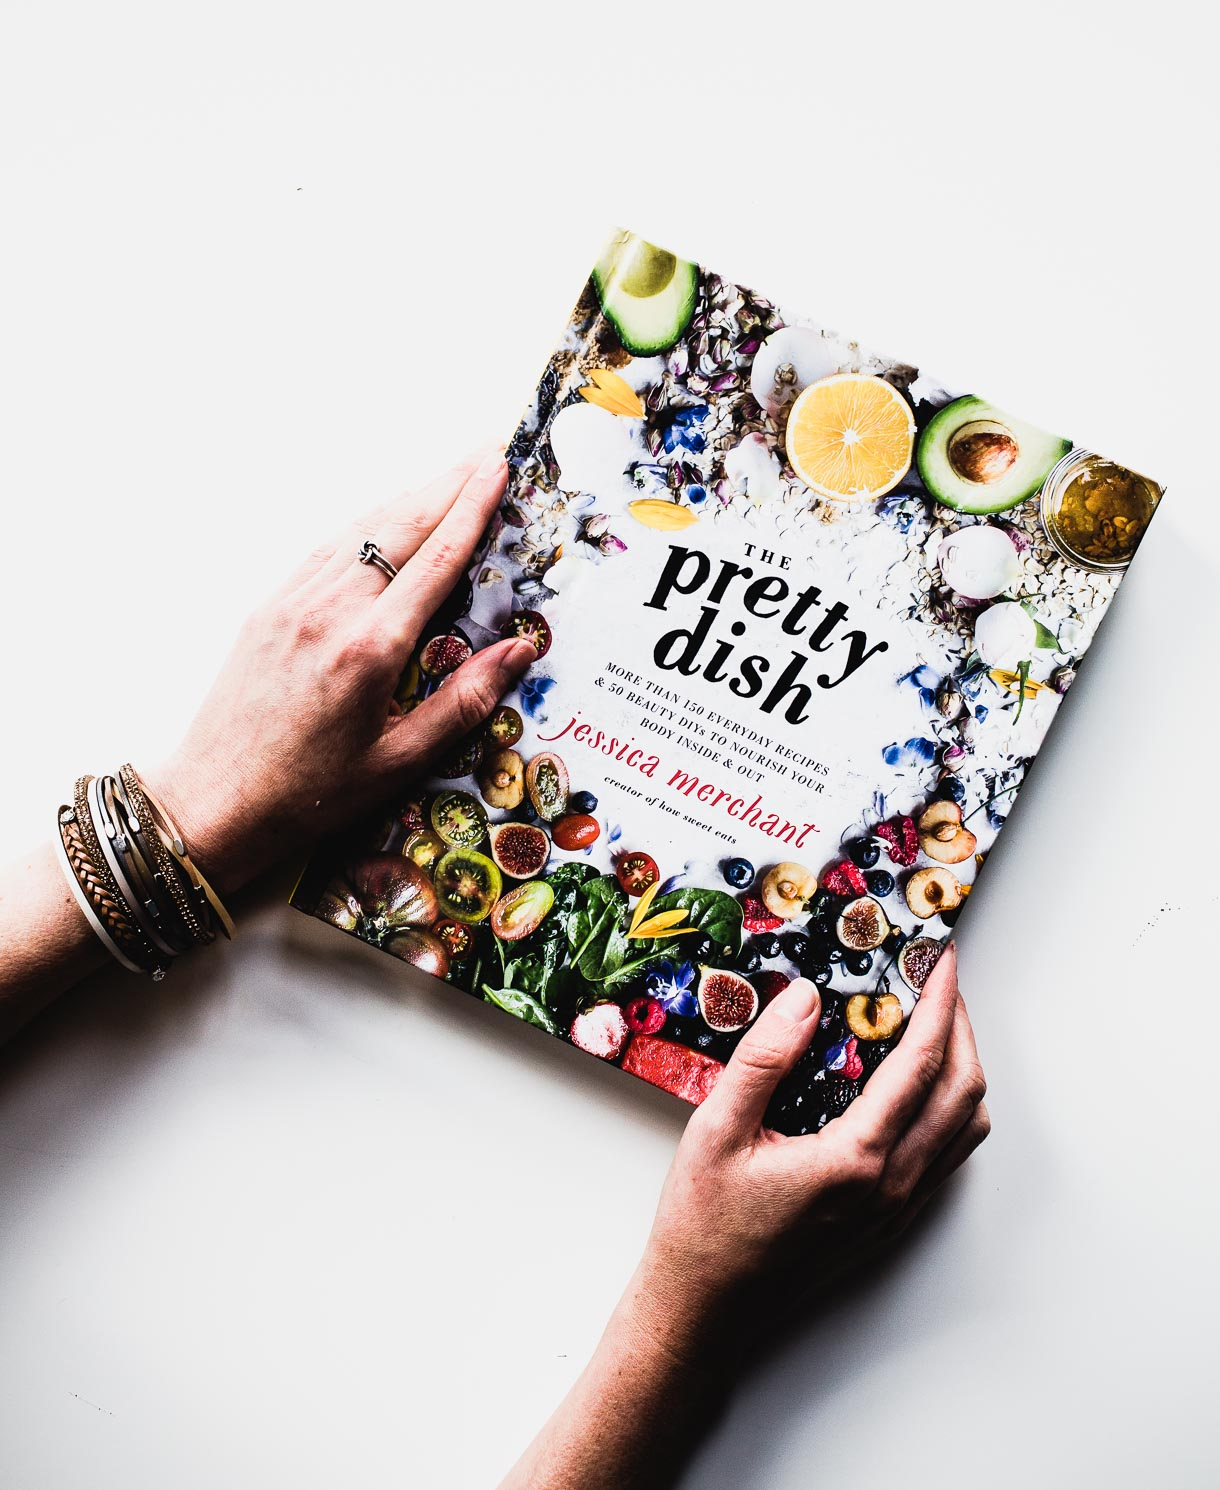 The Pretty Dish cookbook by Jessica Merchant